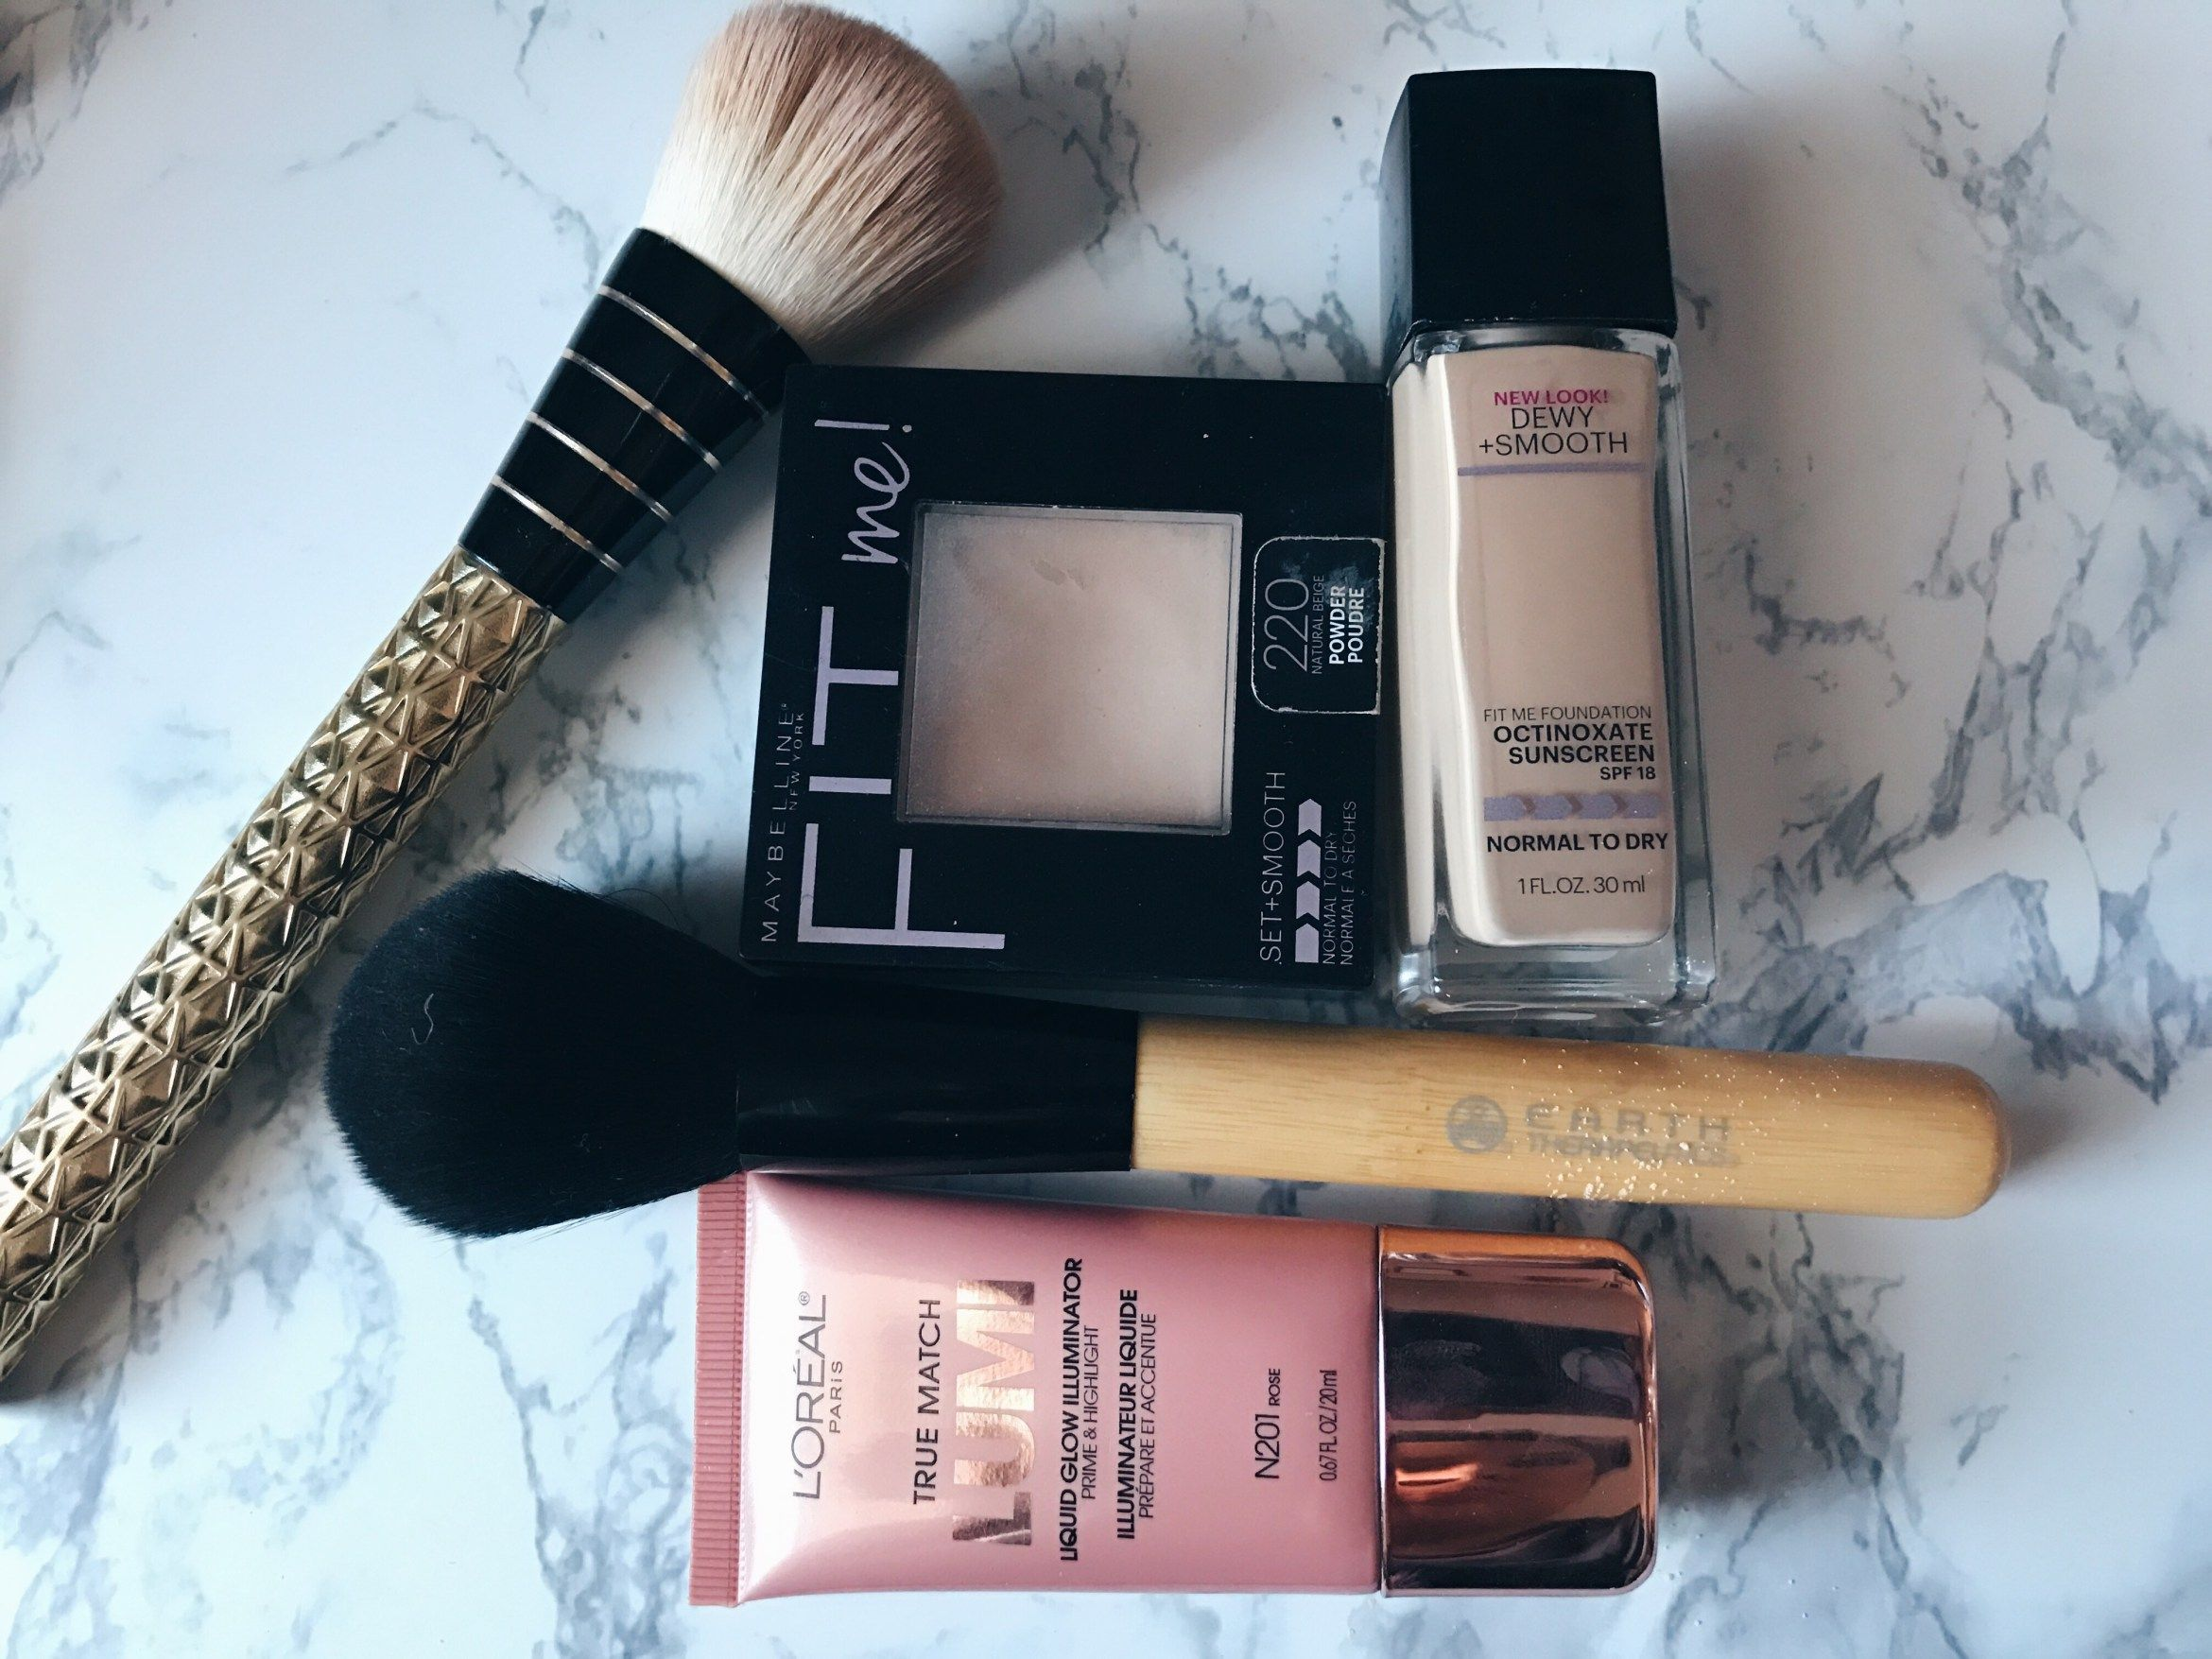 Fav face products #beautyblogger #makeup